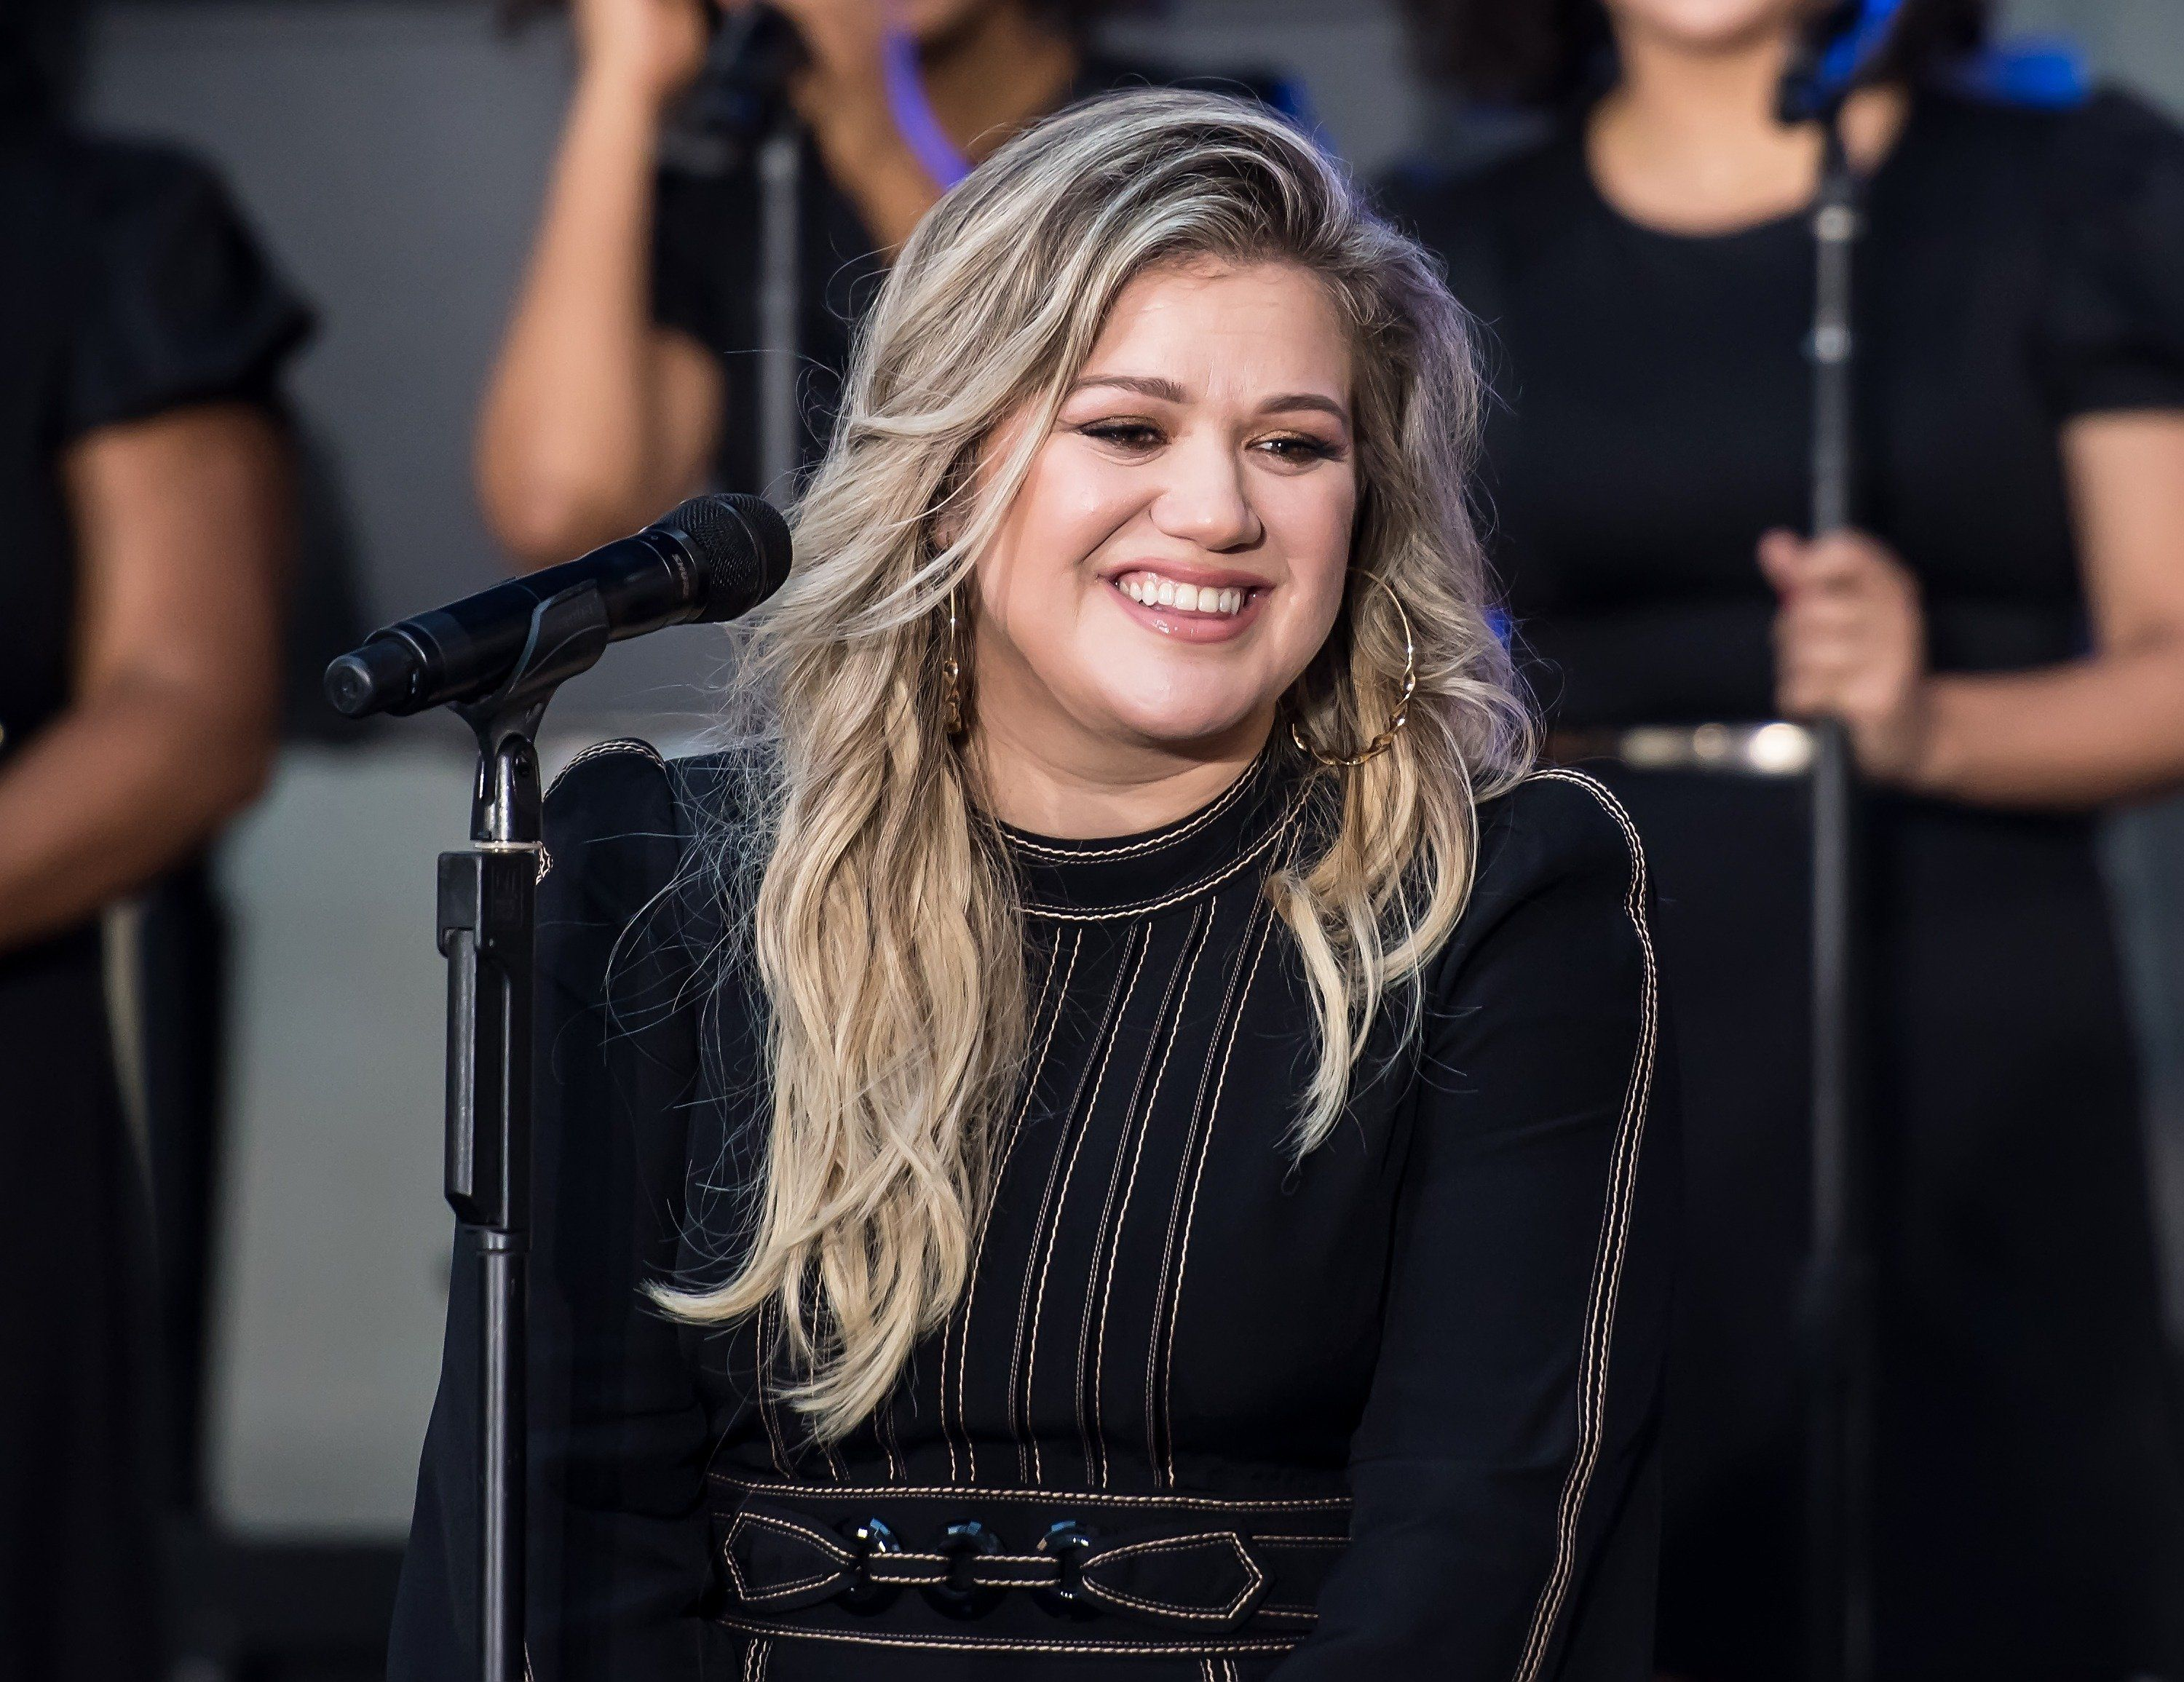 NEW YORK, NY - SEPTEMBER 08:  Singer Kelly Clarkson performs on stage at the Citi Concert Series on NBC's 'Today' at Rockefeller Plaza on September 8, 2017 in New York City.  (Photo by Gilbert Carrasquillo/Getty Images)